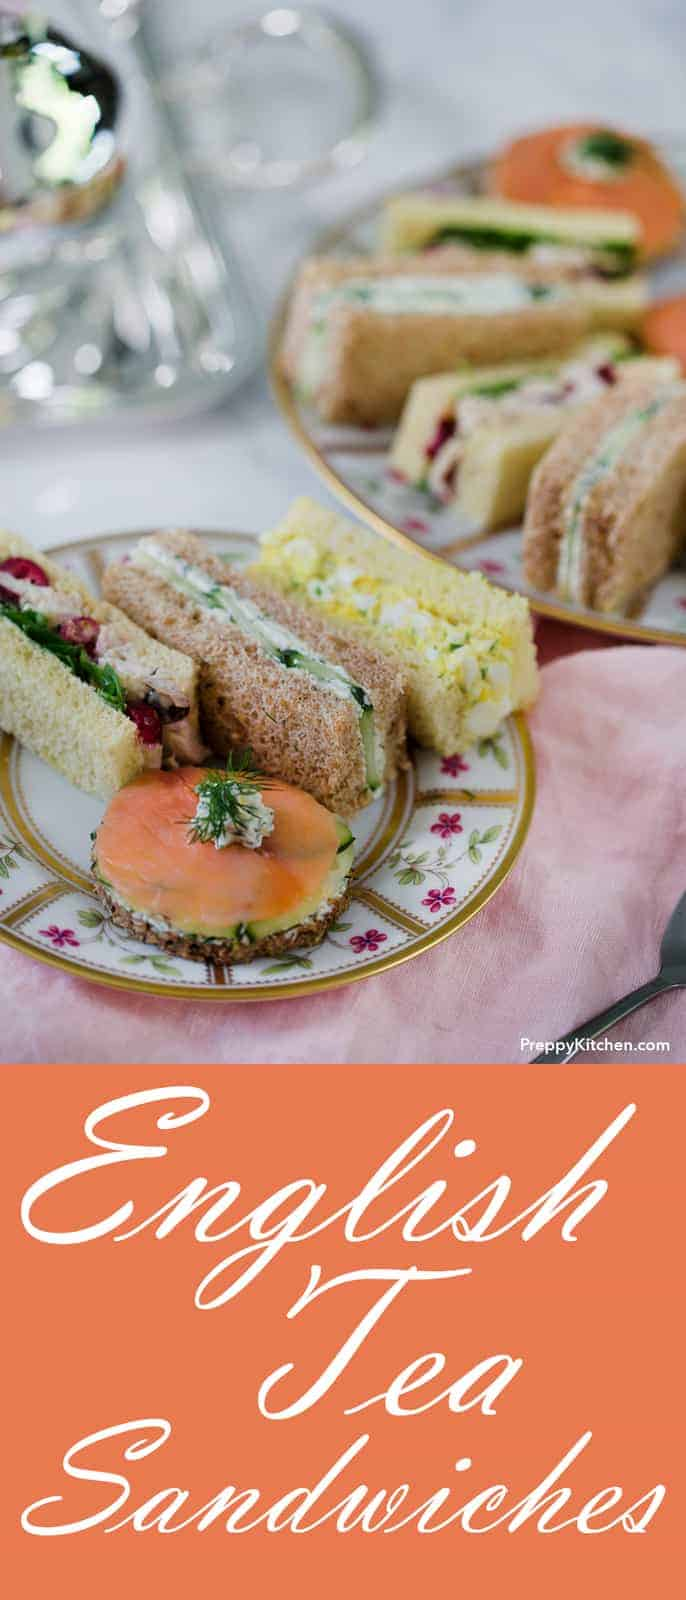 A delicious assortment of traditional English tea sandwiches that will make your heart sing. LOL, well at least you'll really enjoy your afternoon tea! I included my four favorite recipes in this post; classic egg, smoked salmon, cucumber, and chicken with cranberry!